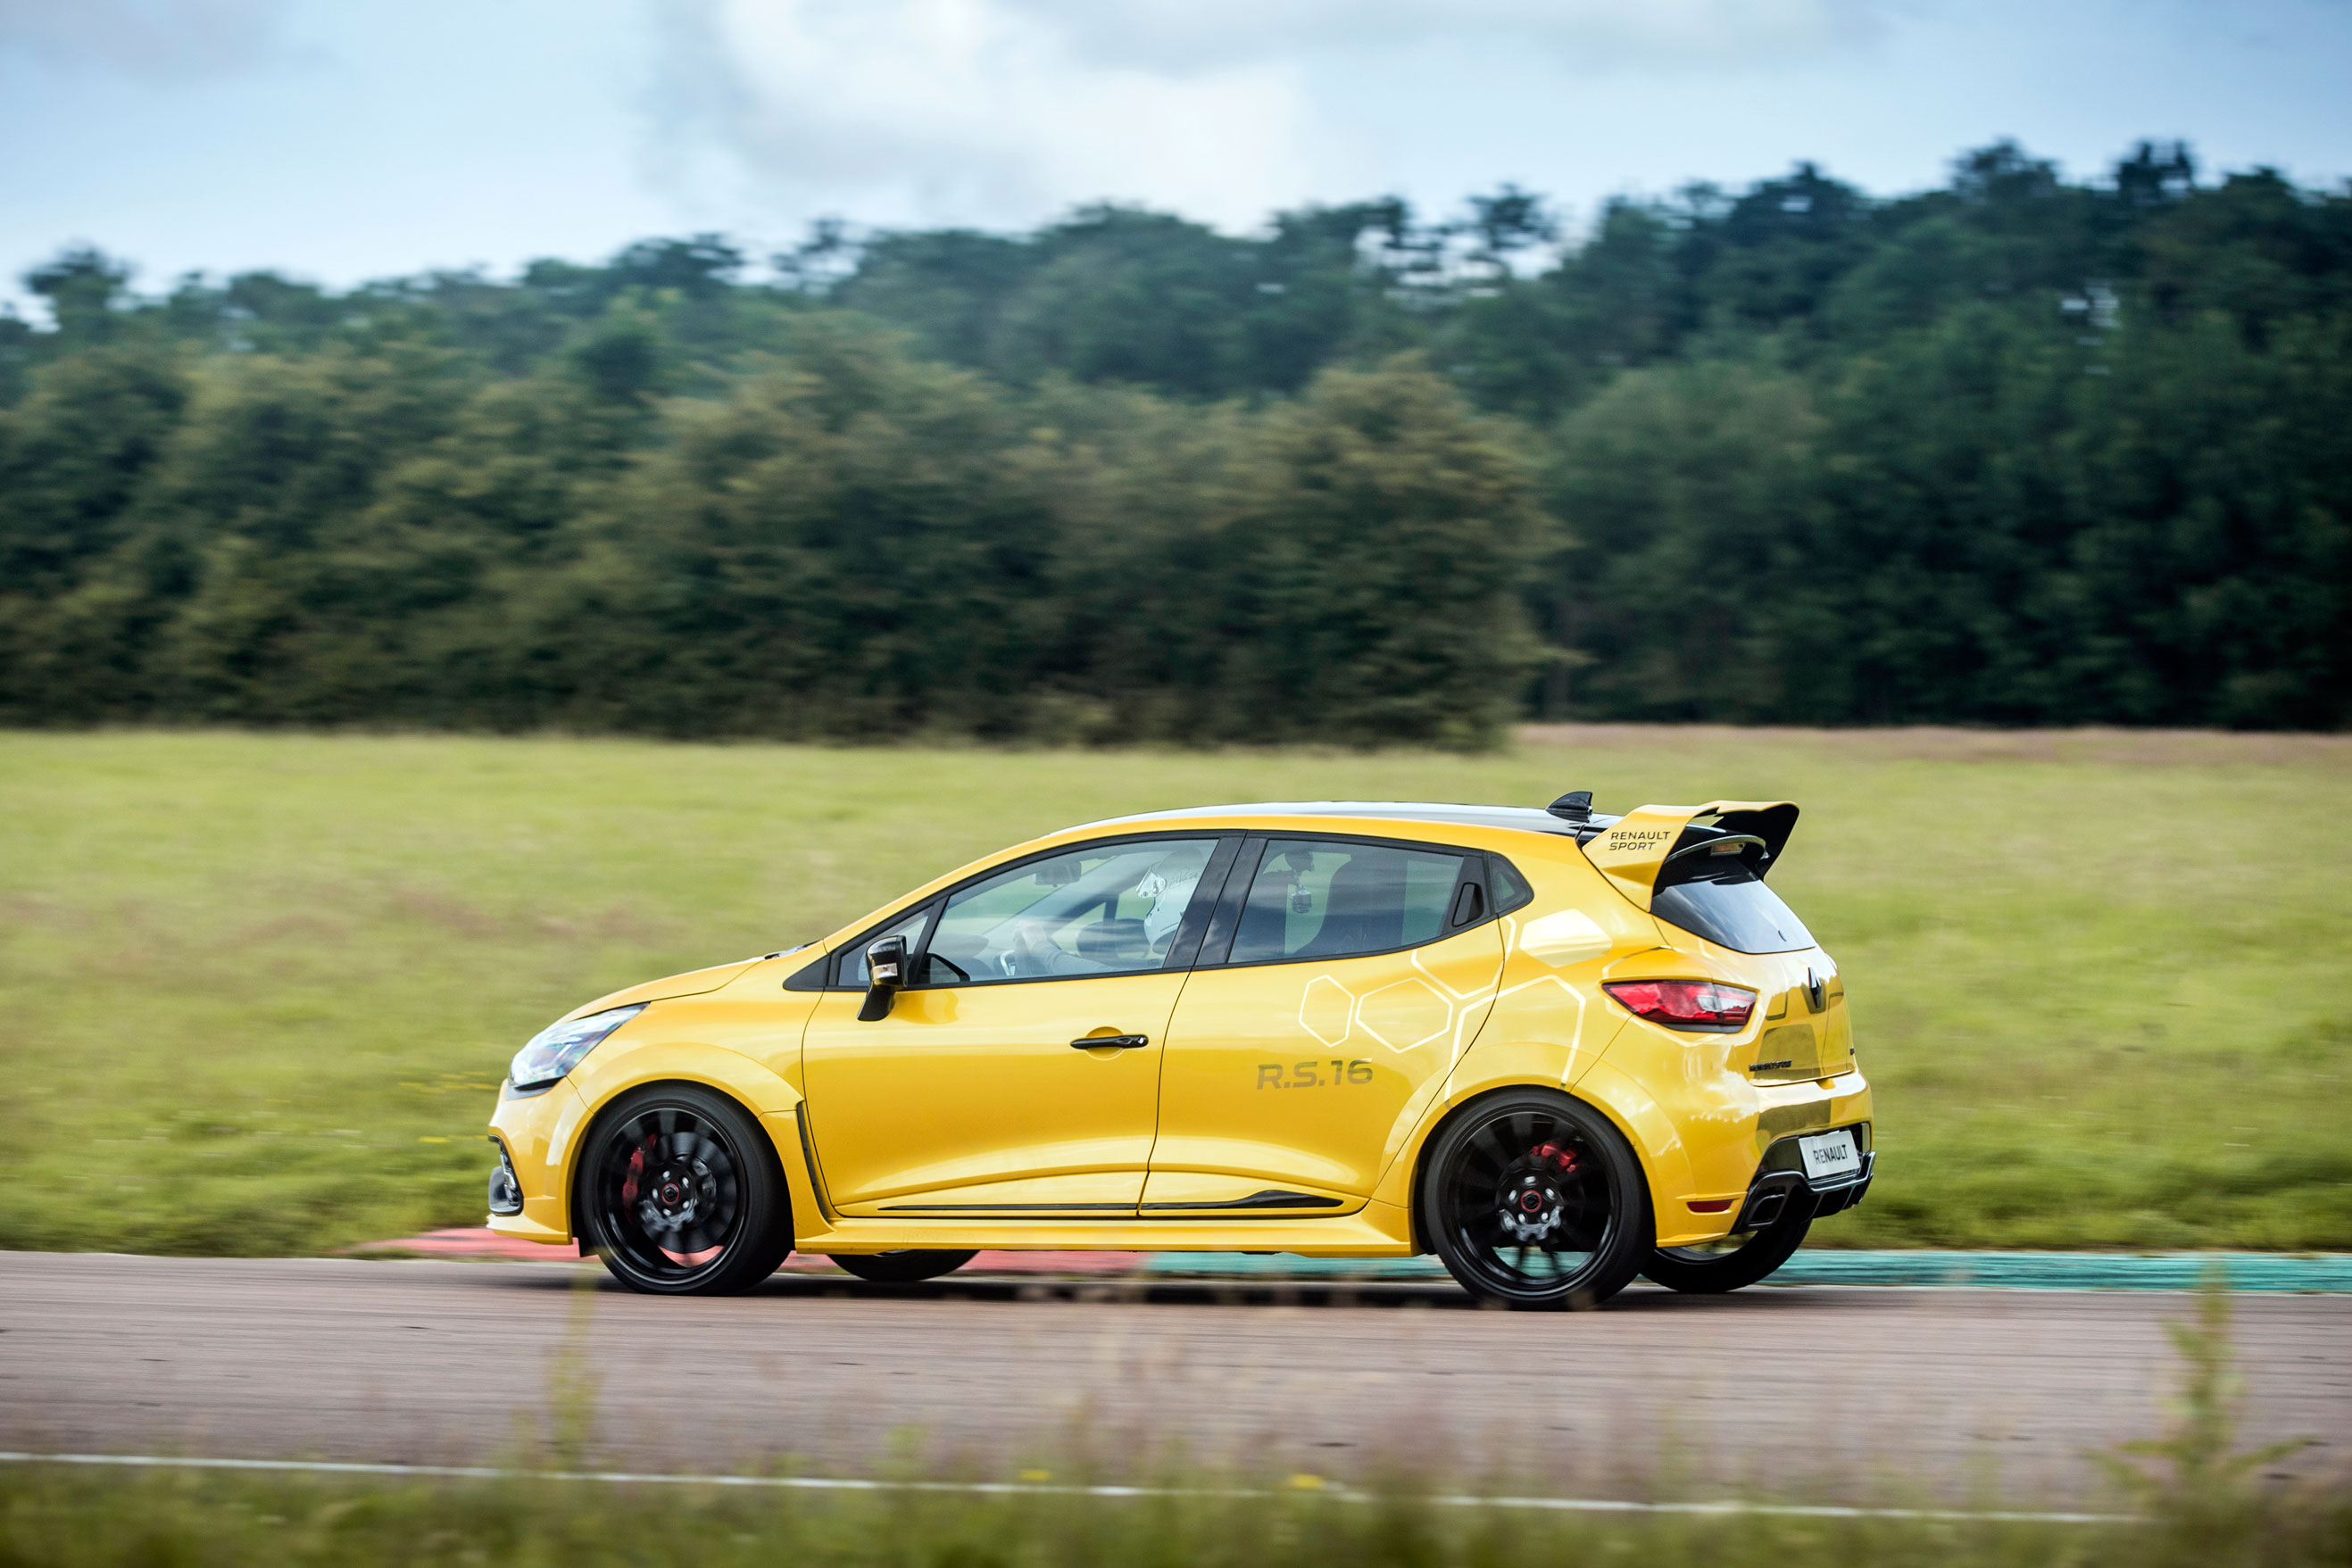 Renault Sport Clio R S 16 review - prices, specs and 0-60